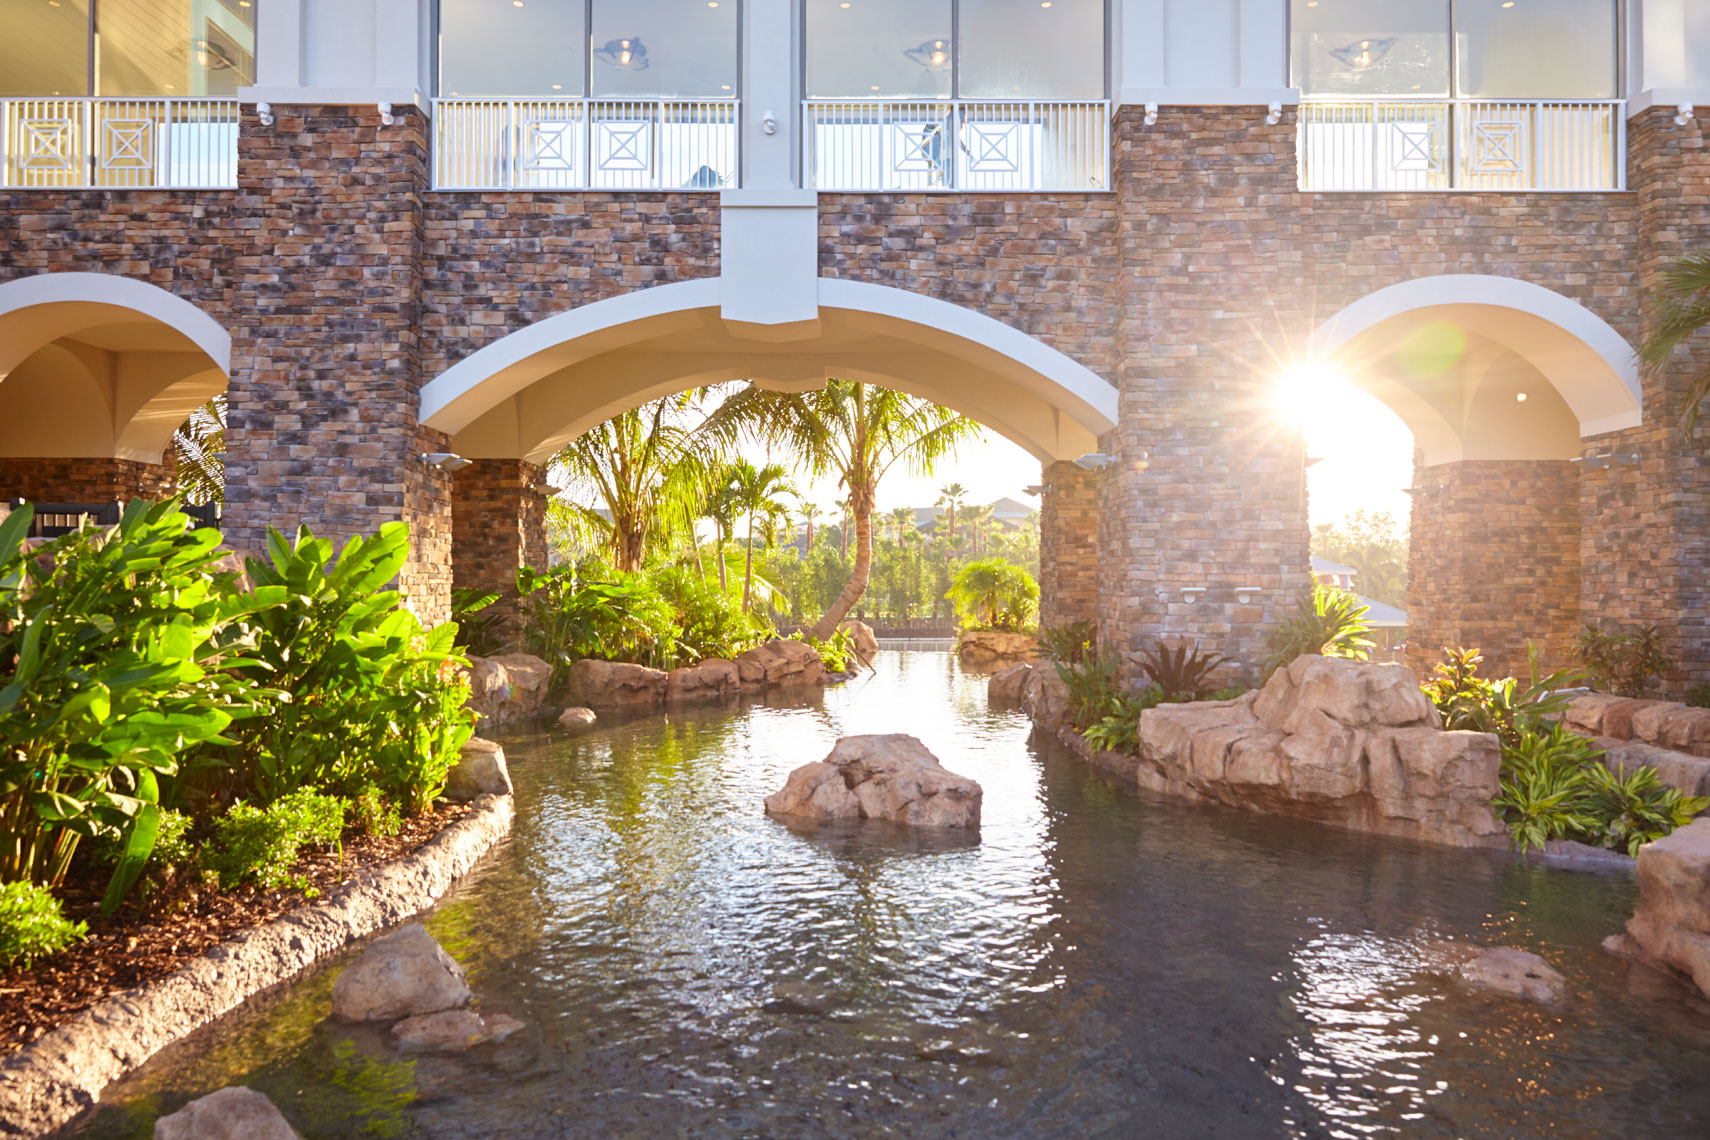 Tropical resort lagoon with bridge and arches at sunset San Francisco interior photographer